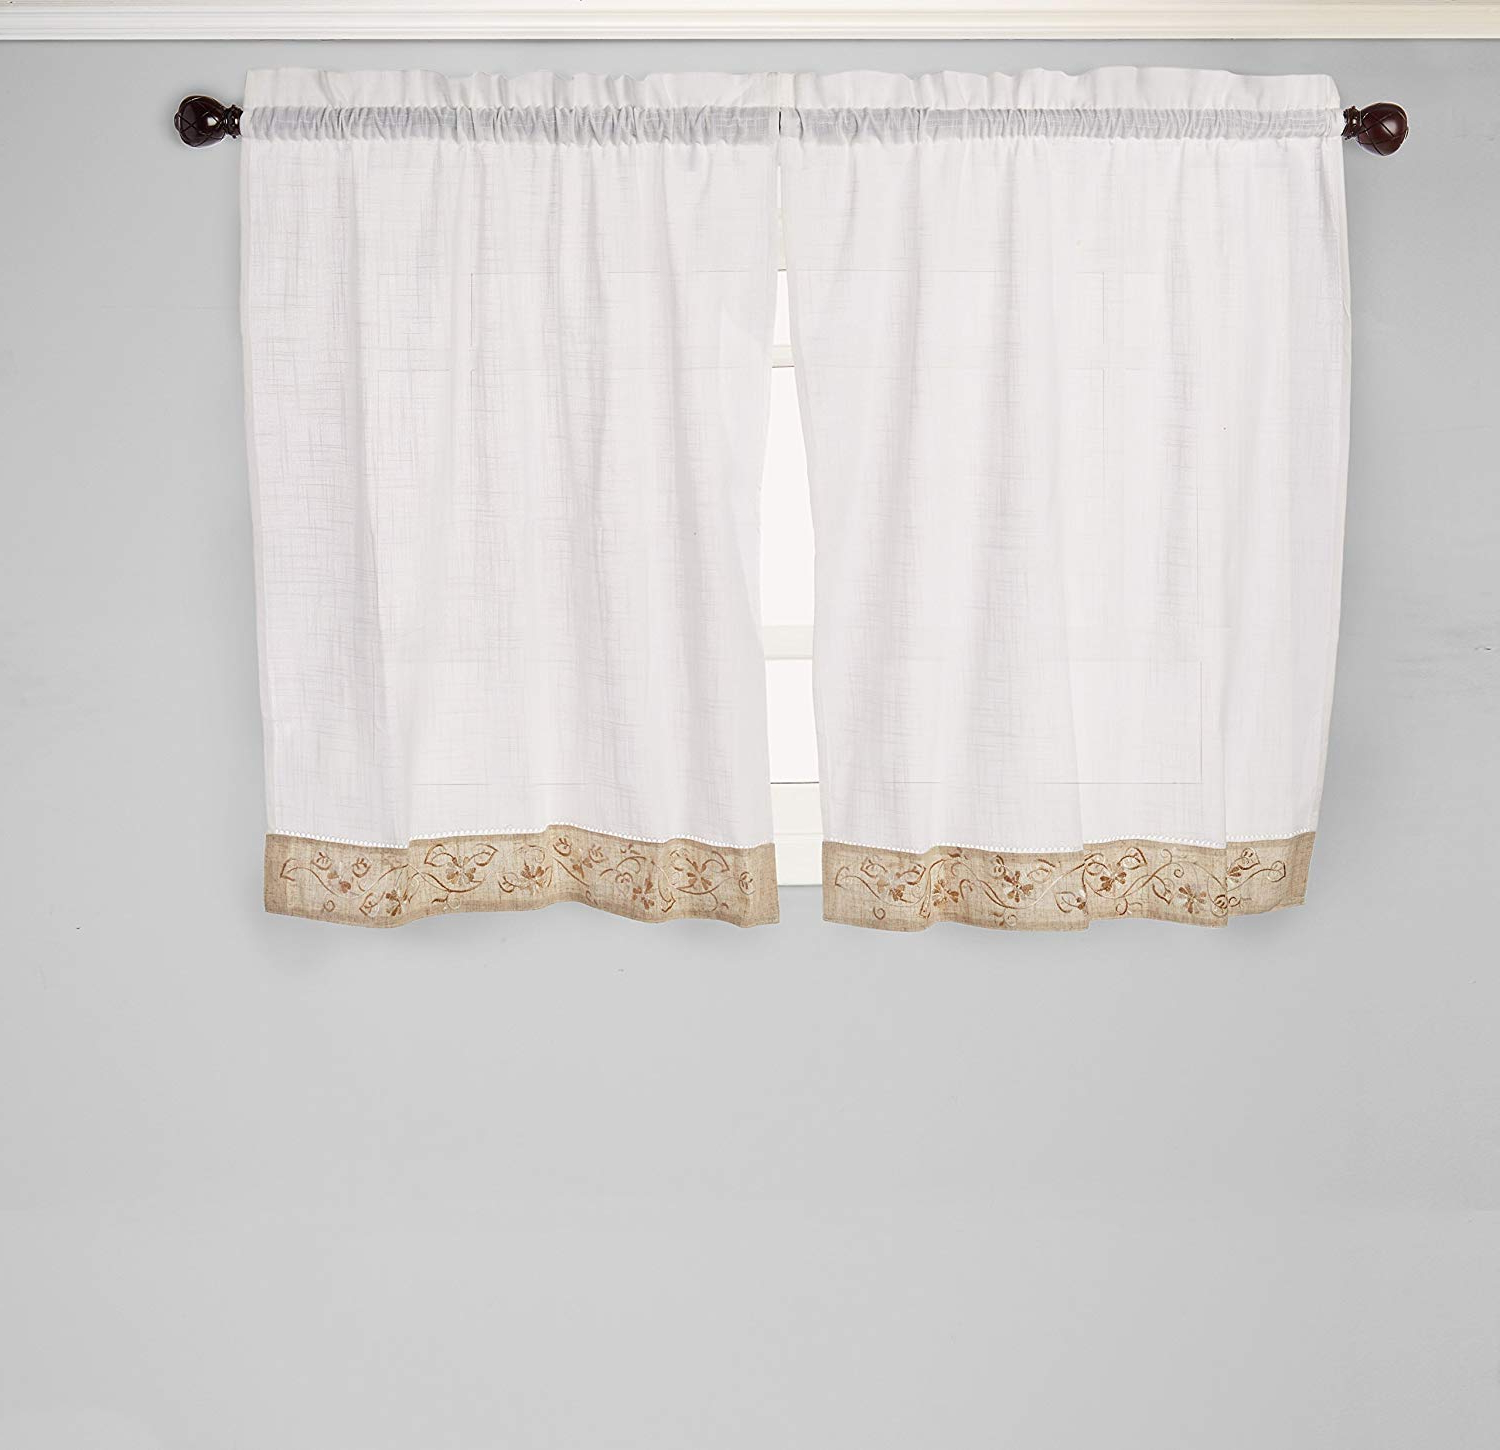 """Best And Newest Oakwood Linen Style Decorative Window Curtain Tier Sets Intended For Achim Home Furnishings Oakwood Tier Pair, 58 36 Inch, Natural, 58"""" X 36"""" (View 2 of 20)"""